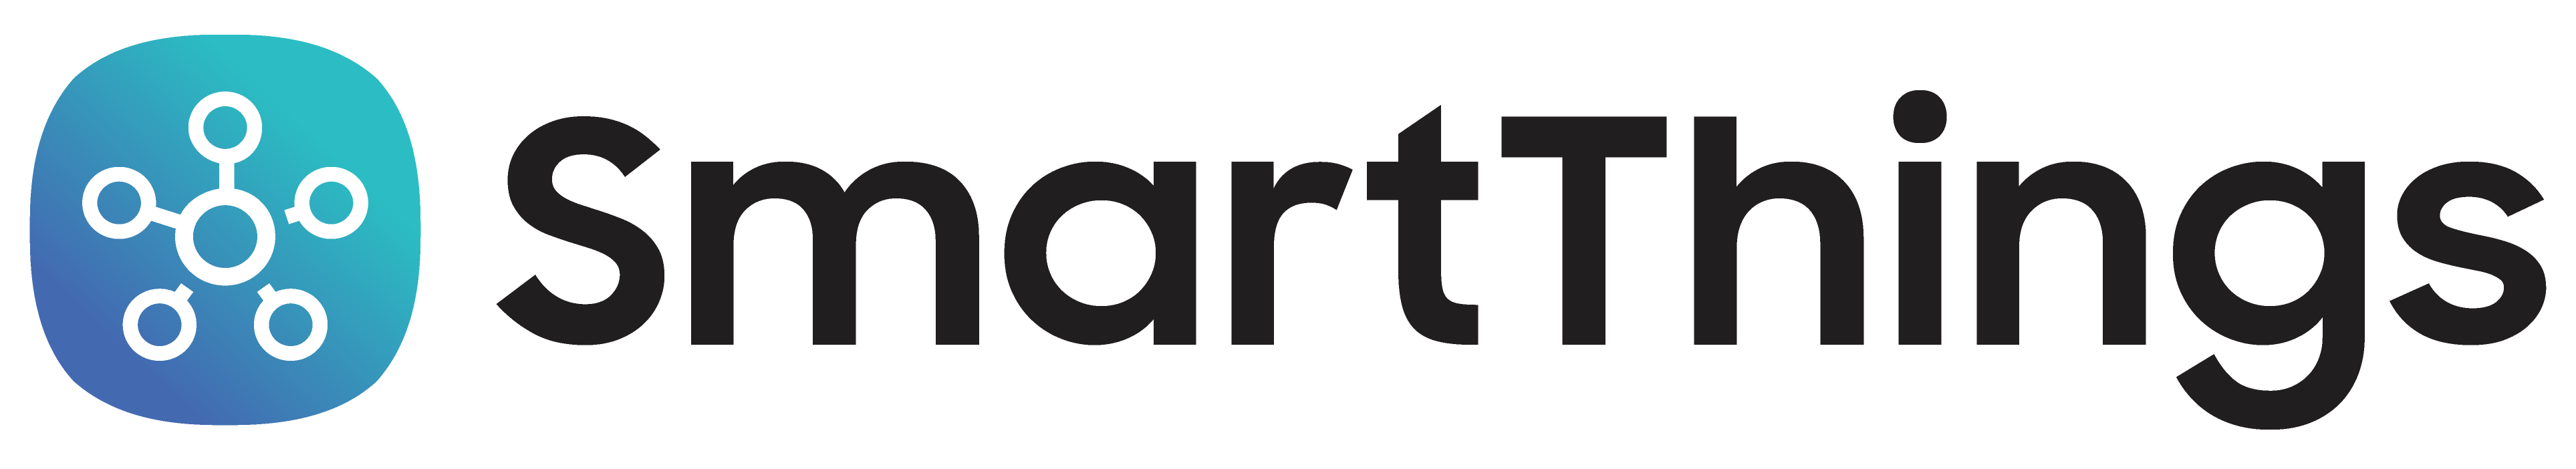 Samsung SmartThings Logo